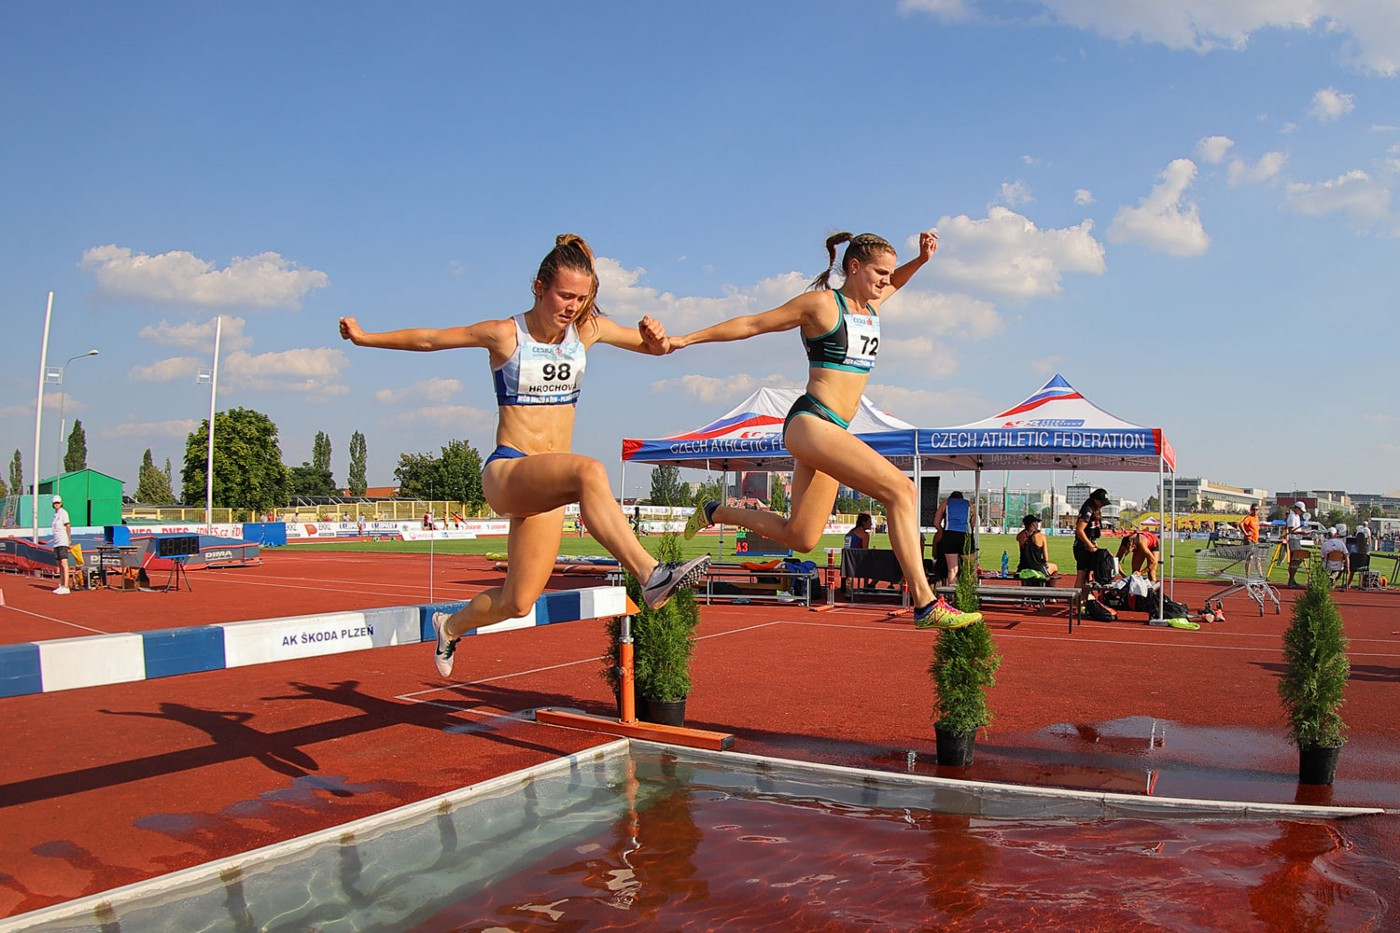 An action shot: Tereza (author) and another runner jump over a water pit during the 3000 meter steeplechase.